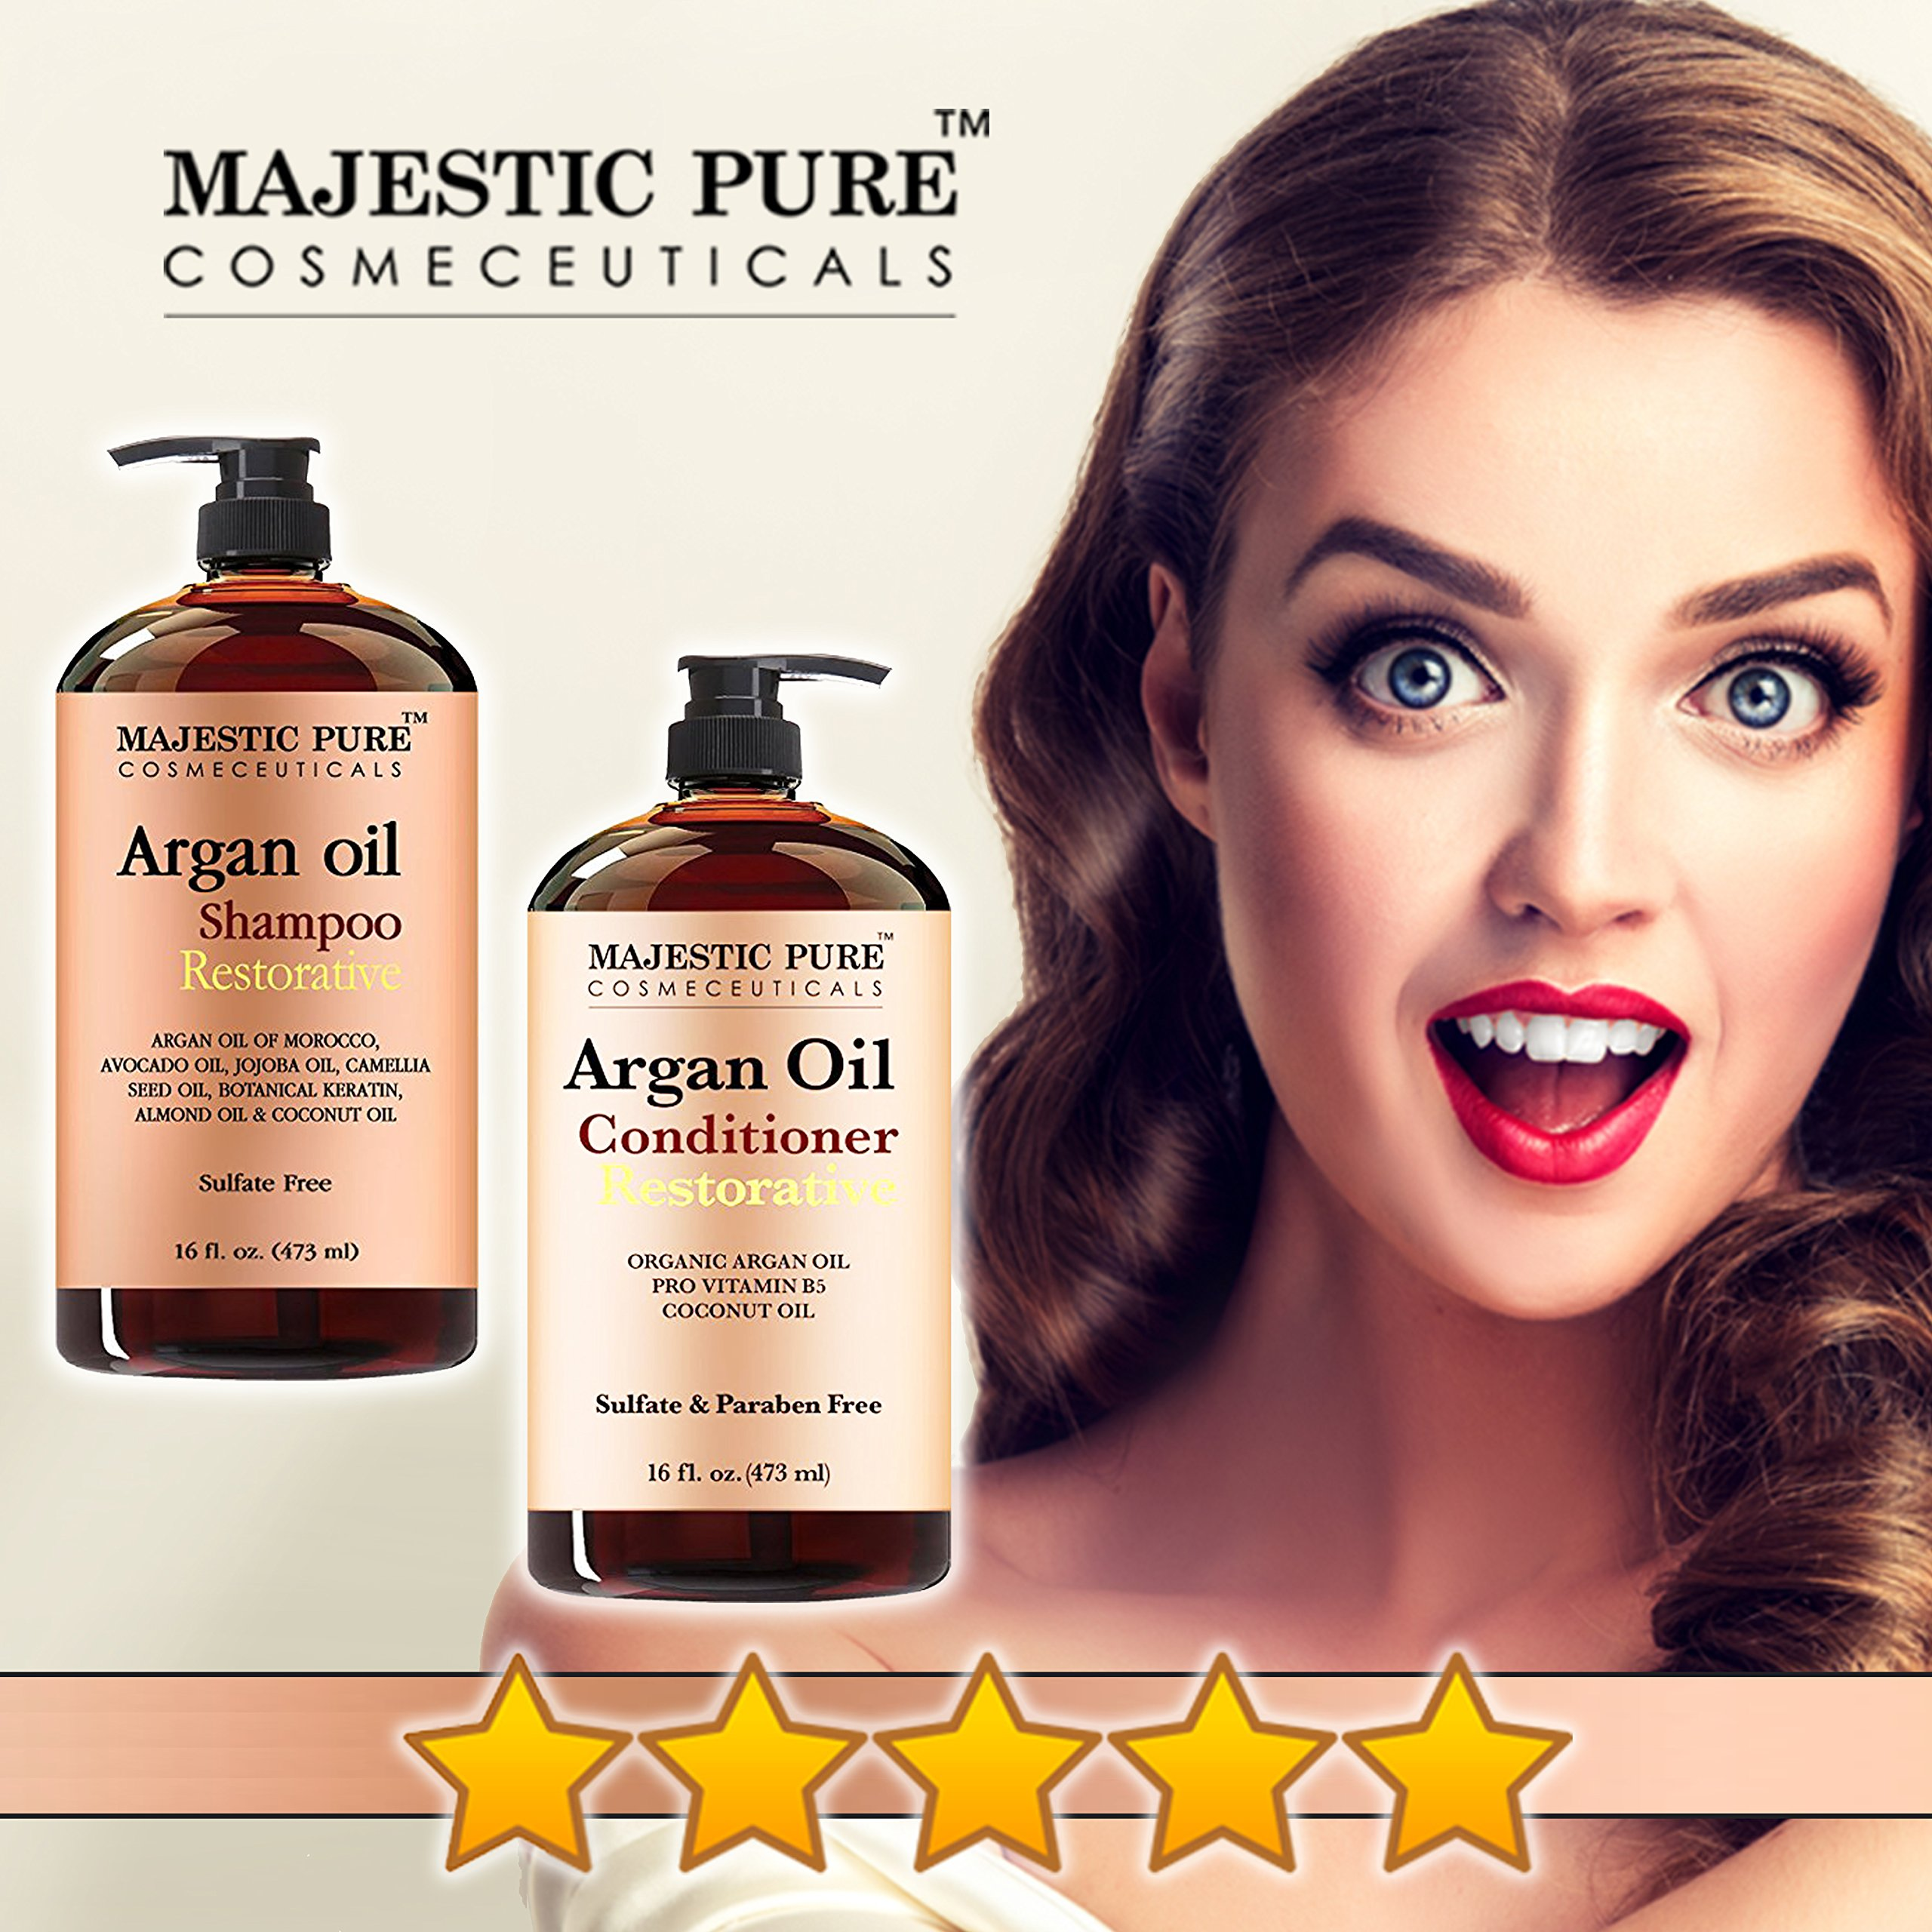 Argan Oil Shampoo and Conditioner, from Majestic Pure, Sulfate Free, Vitamin Enriched, Volumizing & Gentle Hair Restoration Formula for Daily Use, For Men and Women, 16 fl oz each … by Majestic Pure (Image #4)